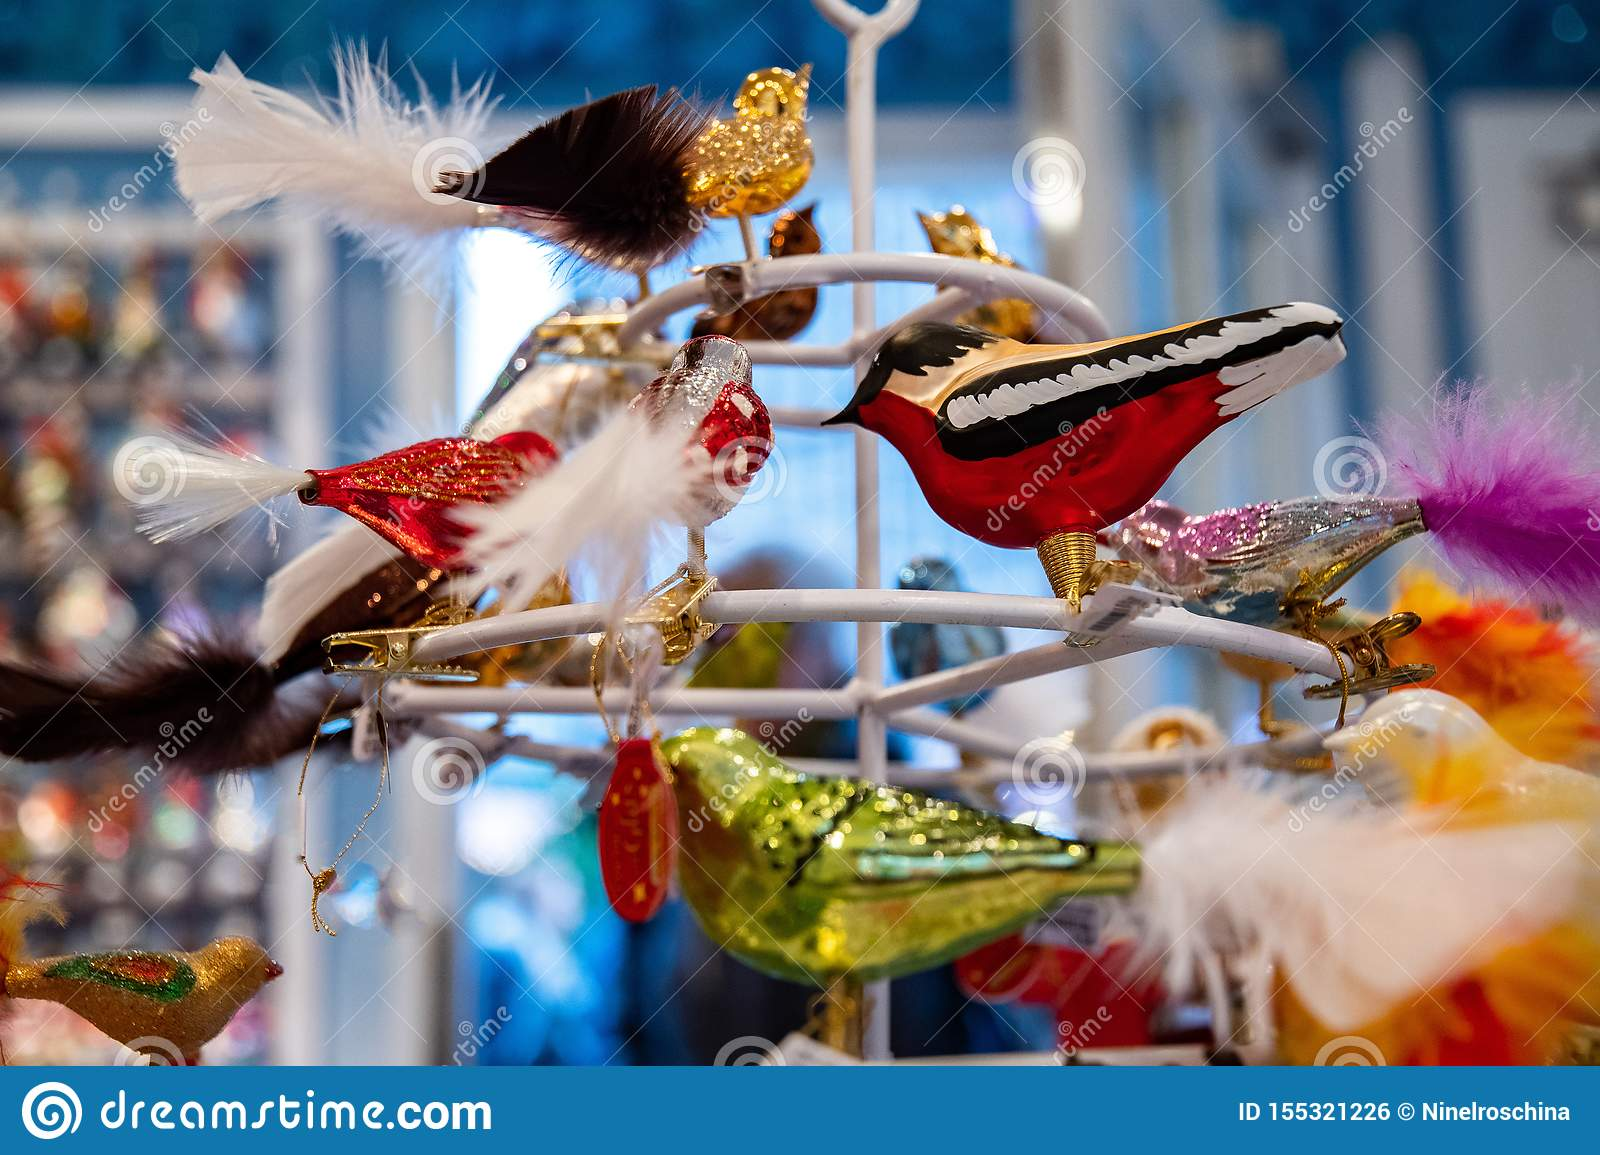 Fairytale Christmas Decorations.Christmas Ornaments In Shape Of Bright Colorful Birds With